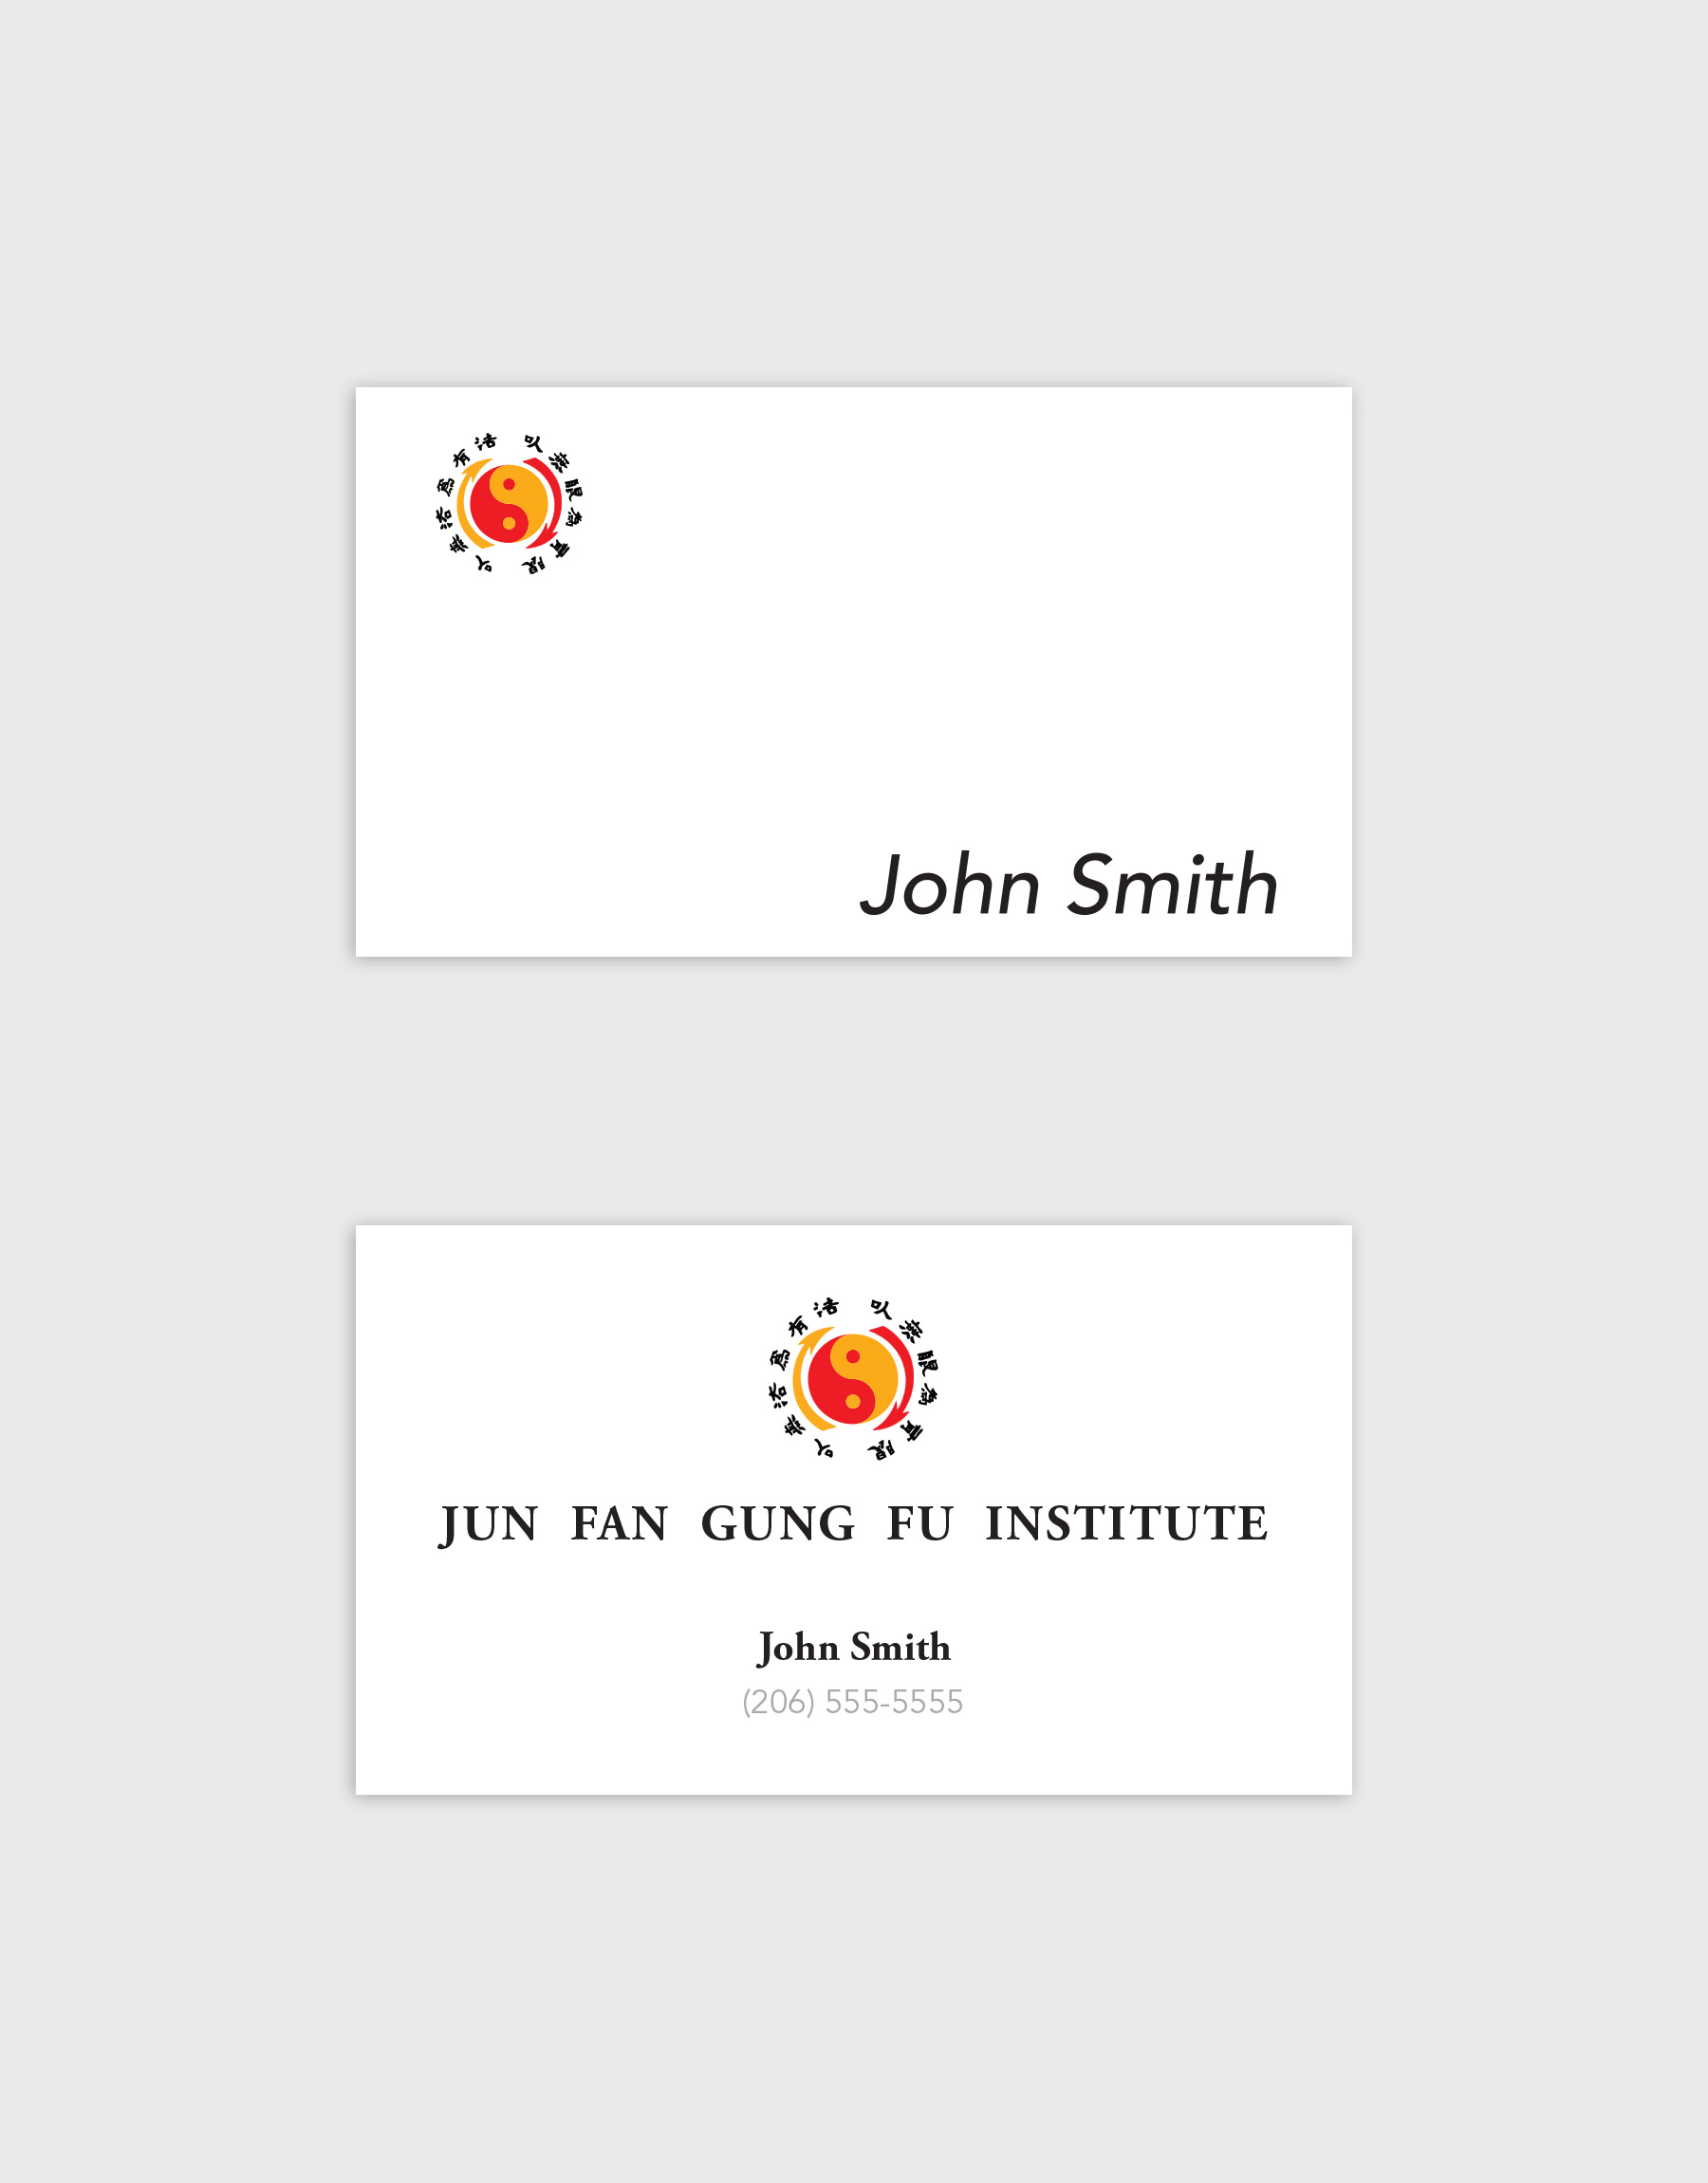 Jun Fan Gung Fu Institute Business Cards